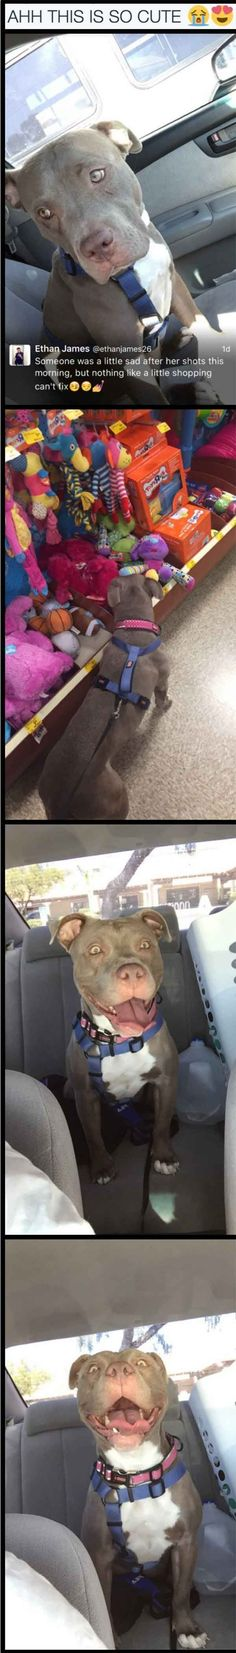 All pits deserve to be loved like this! <<< I no joke thought the pitbull was wearing a tux in the first picture lmao Cute Funny Animals, Funny Animal Pictures, Funny Dogs, Cute Pictures, Funny Cute, Love My Dog, Animals And Pets, Baby Animals, Cute Puppies